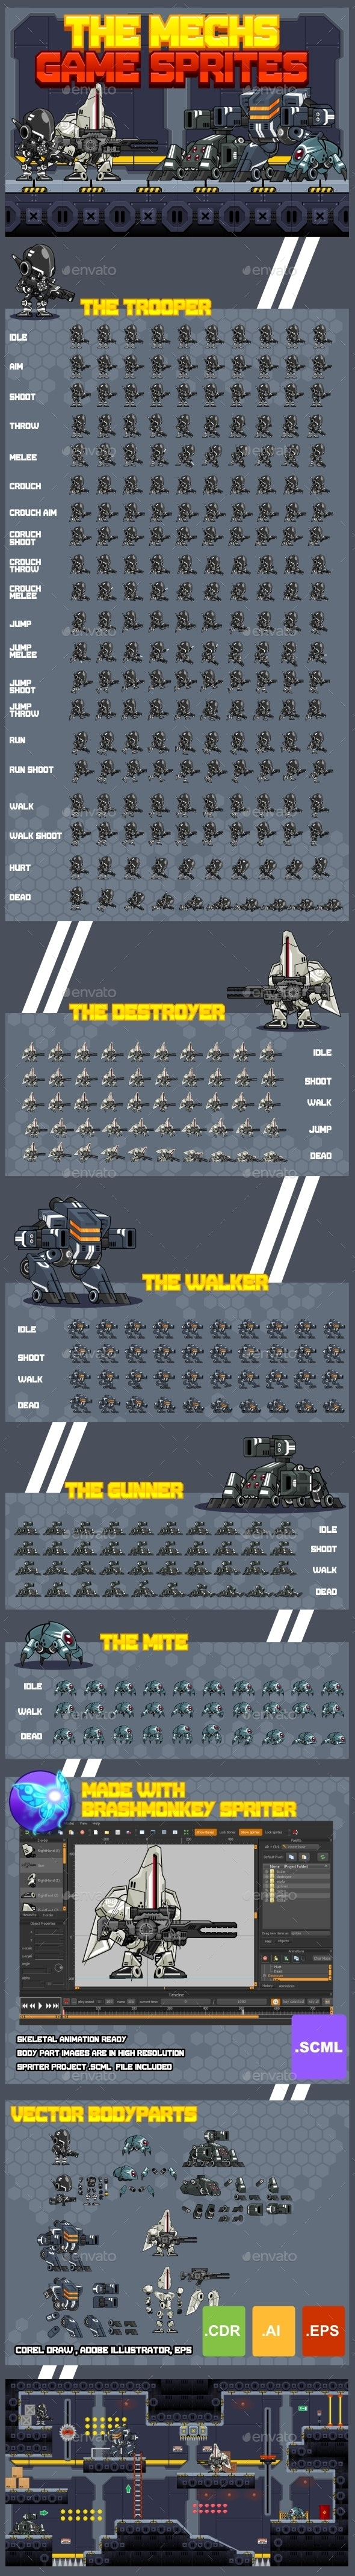 The Mechs - Game Sprites - Sprites Game Assets